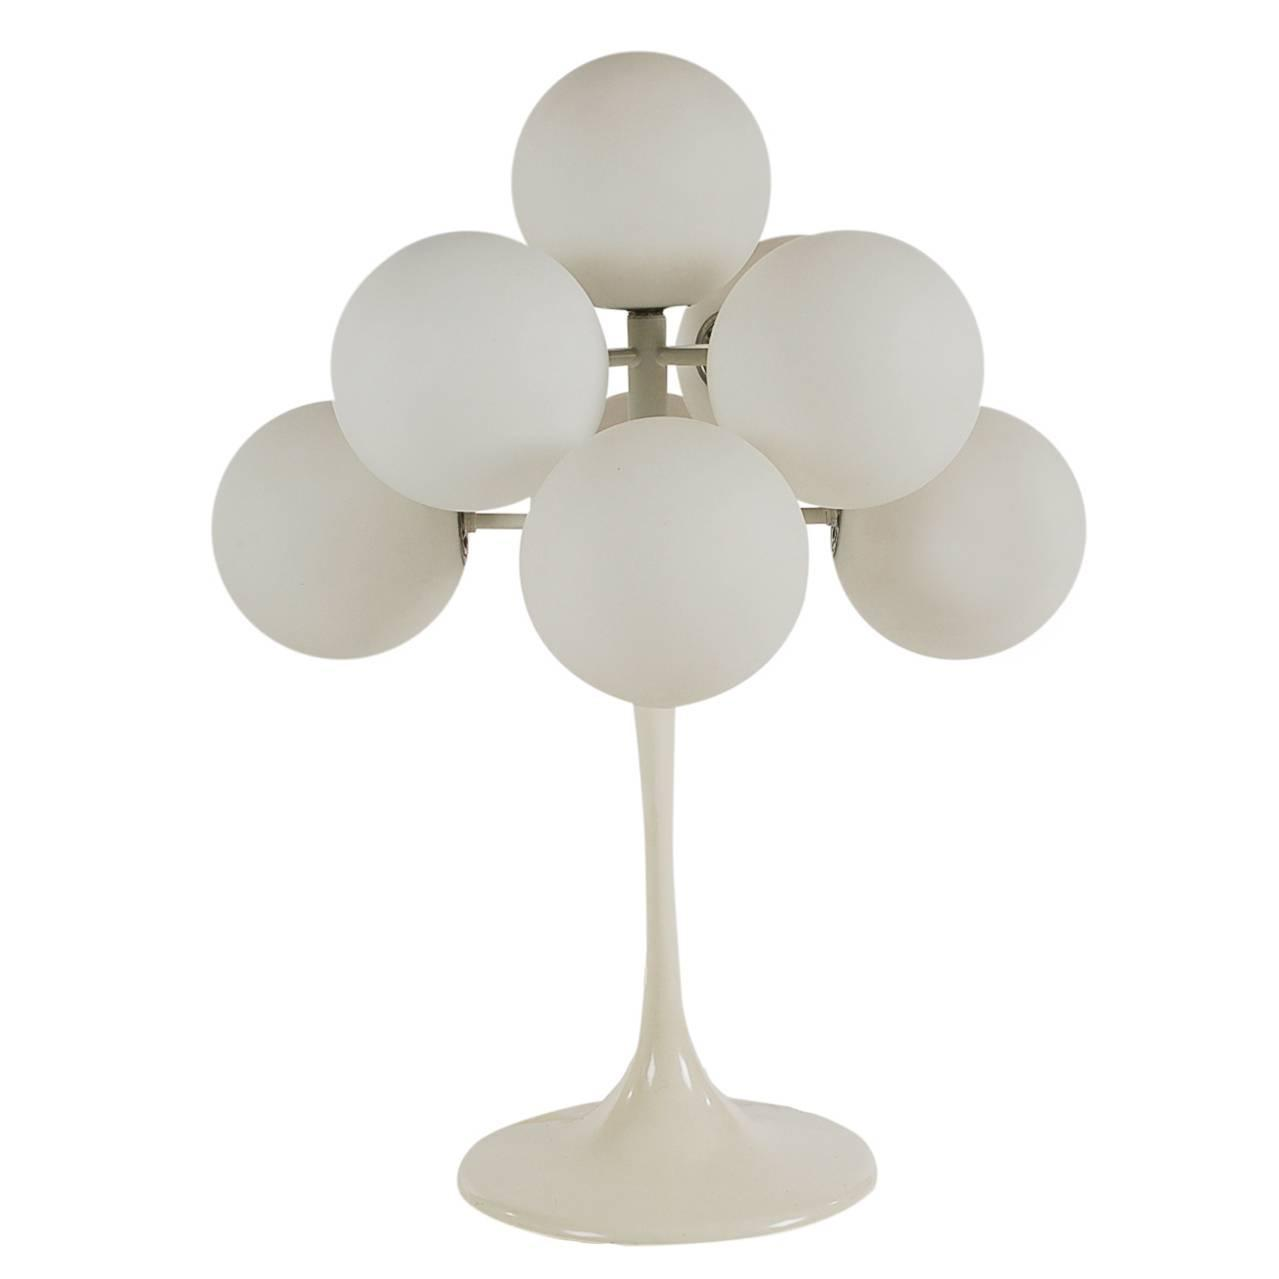 Mid century modern tulip table lamp by max bill in white for sale mid century modern tulip table lamp by max bill in white for sale at 1stdibs aloadofball Image collections